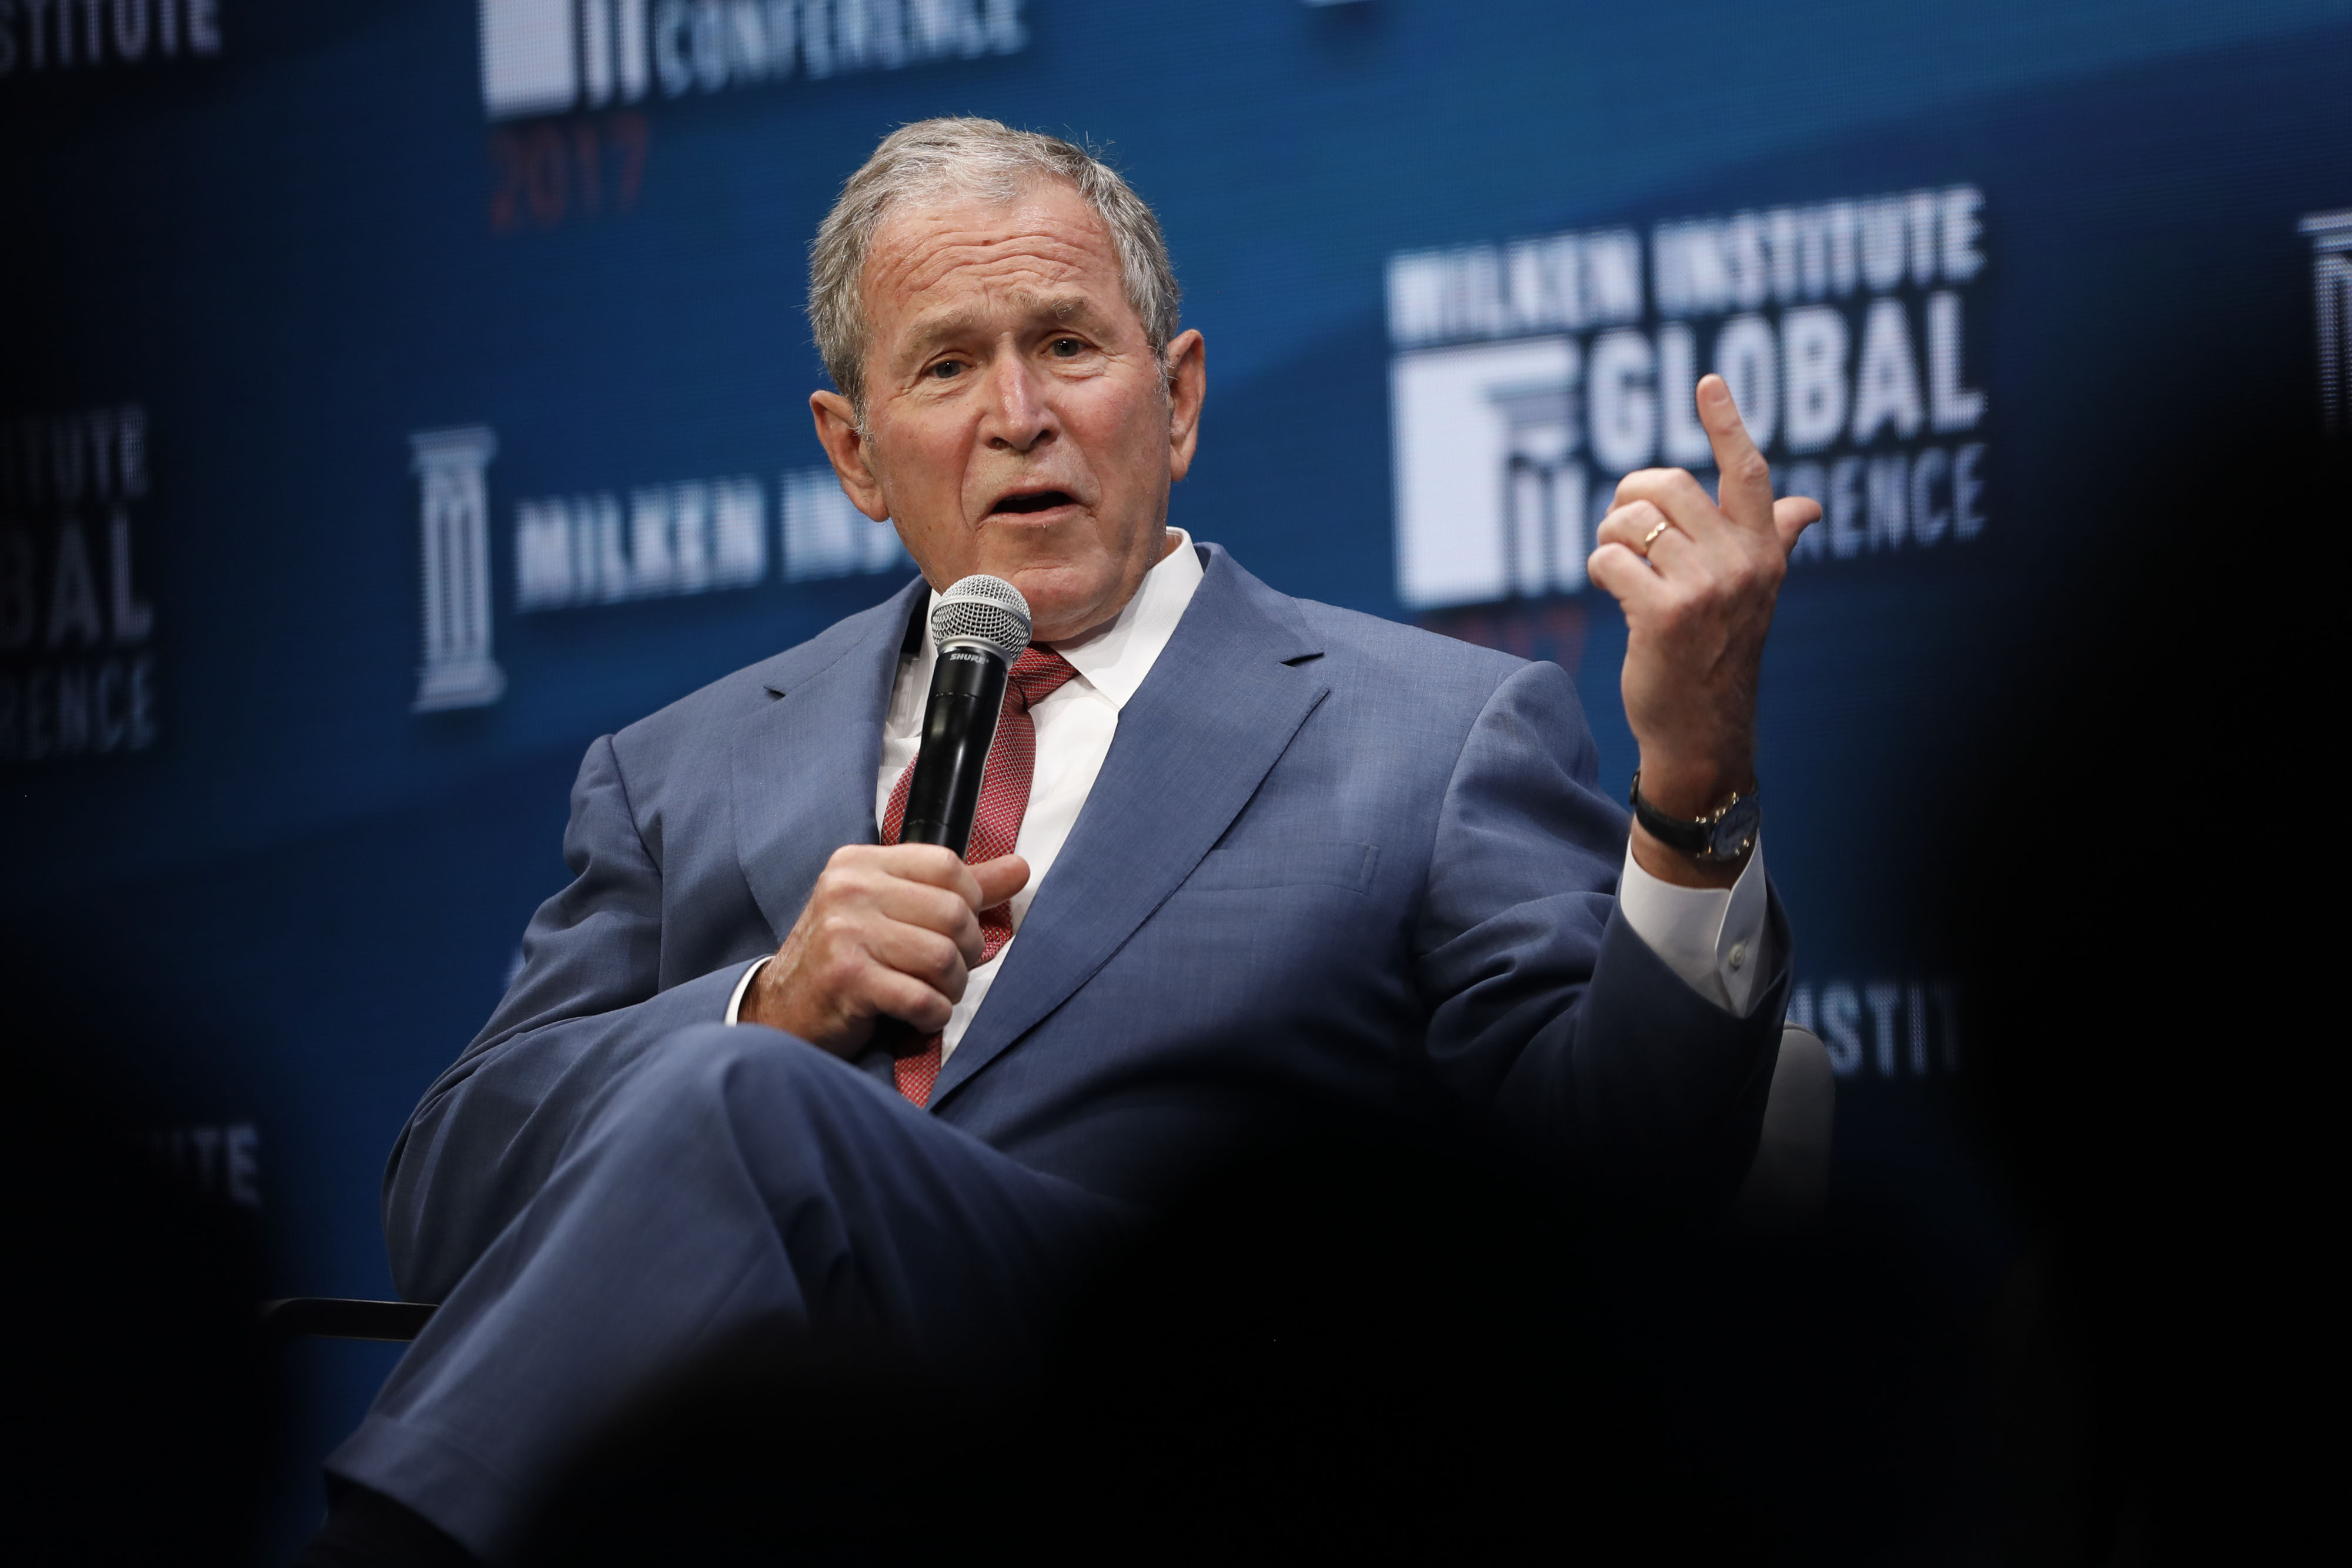 Former U.S. President George W. Bush speaks during the Milken Institute GlobalConference in Beverly Hills, California, U.S., on Wednesday, May 3, 2017. Photographer: Patrick T. Fallon/Bloomberg via Getty Images